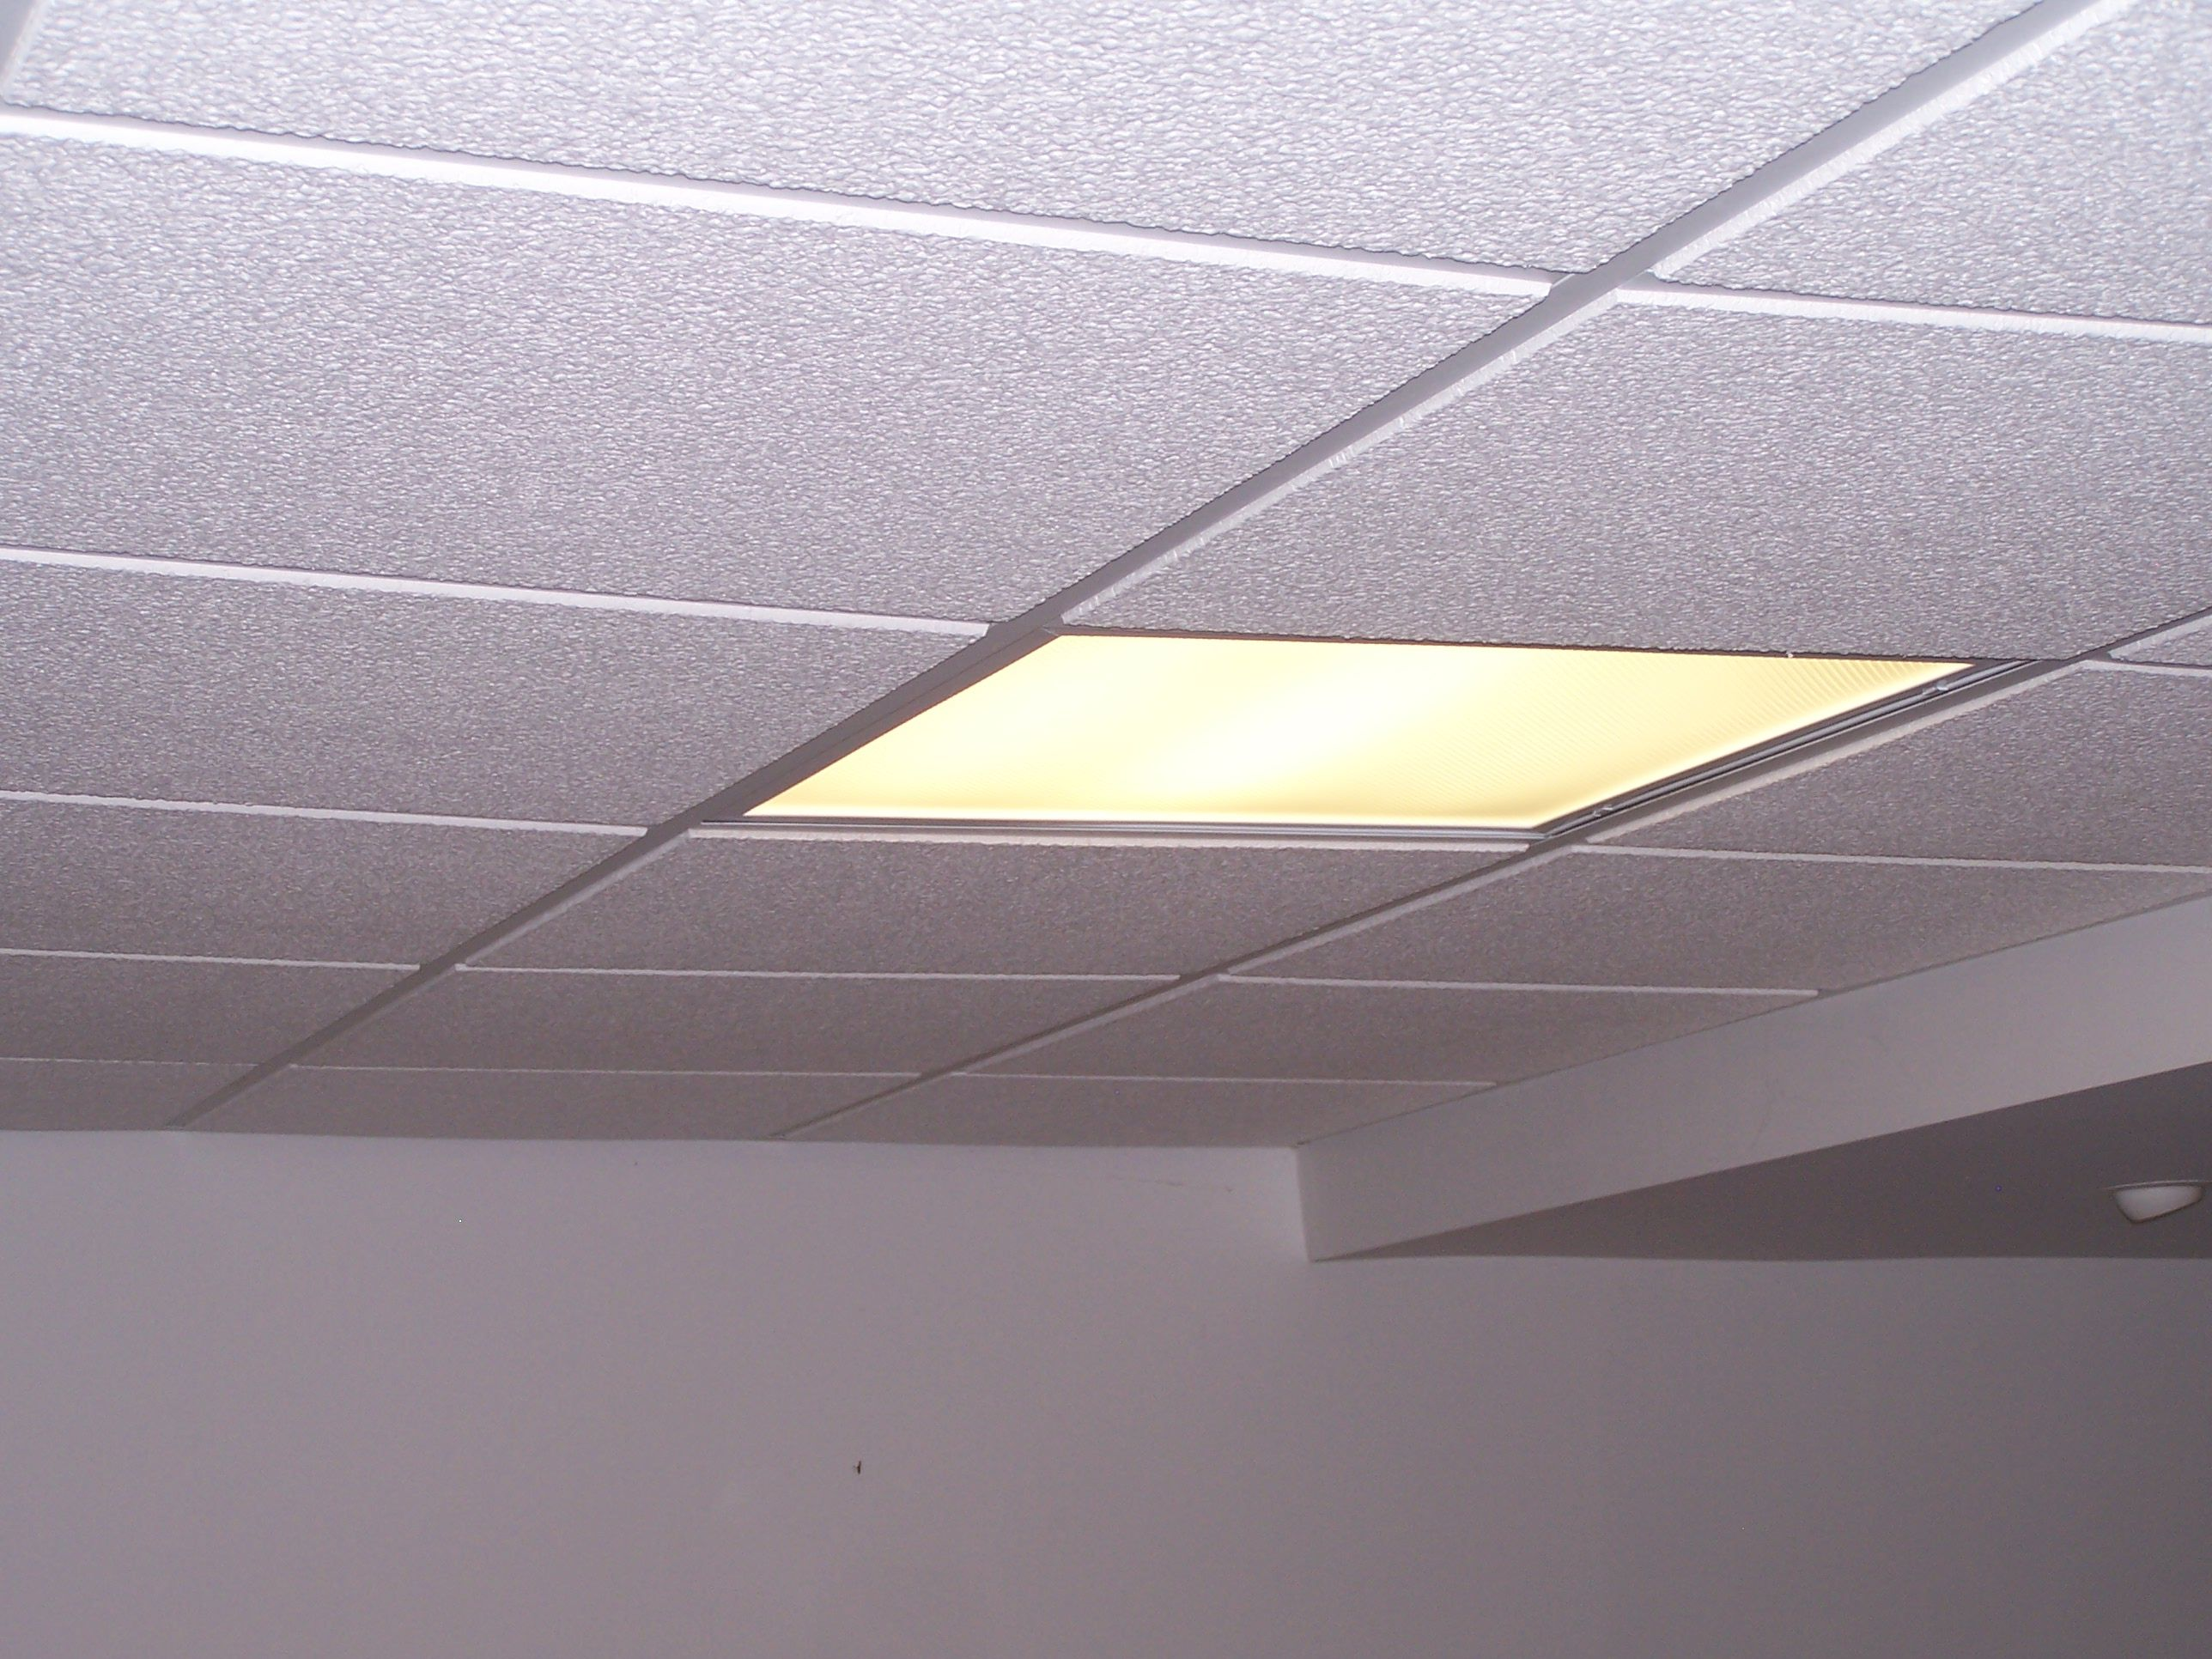 24 egg crate ceiling tiles httpcreativechairsandtables 24 egg crate ceiling tiles dailygadgetfo Images